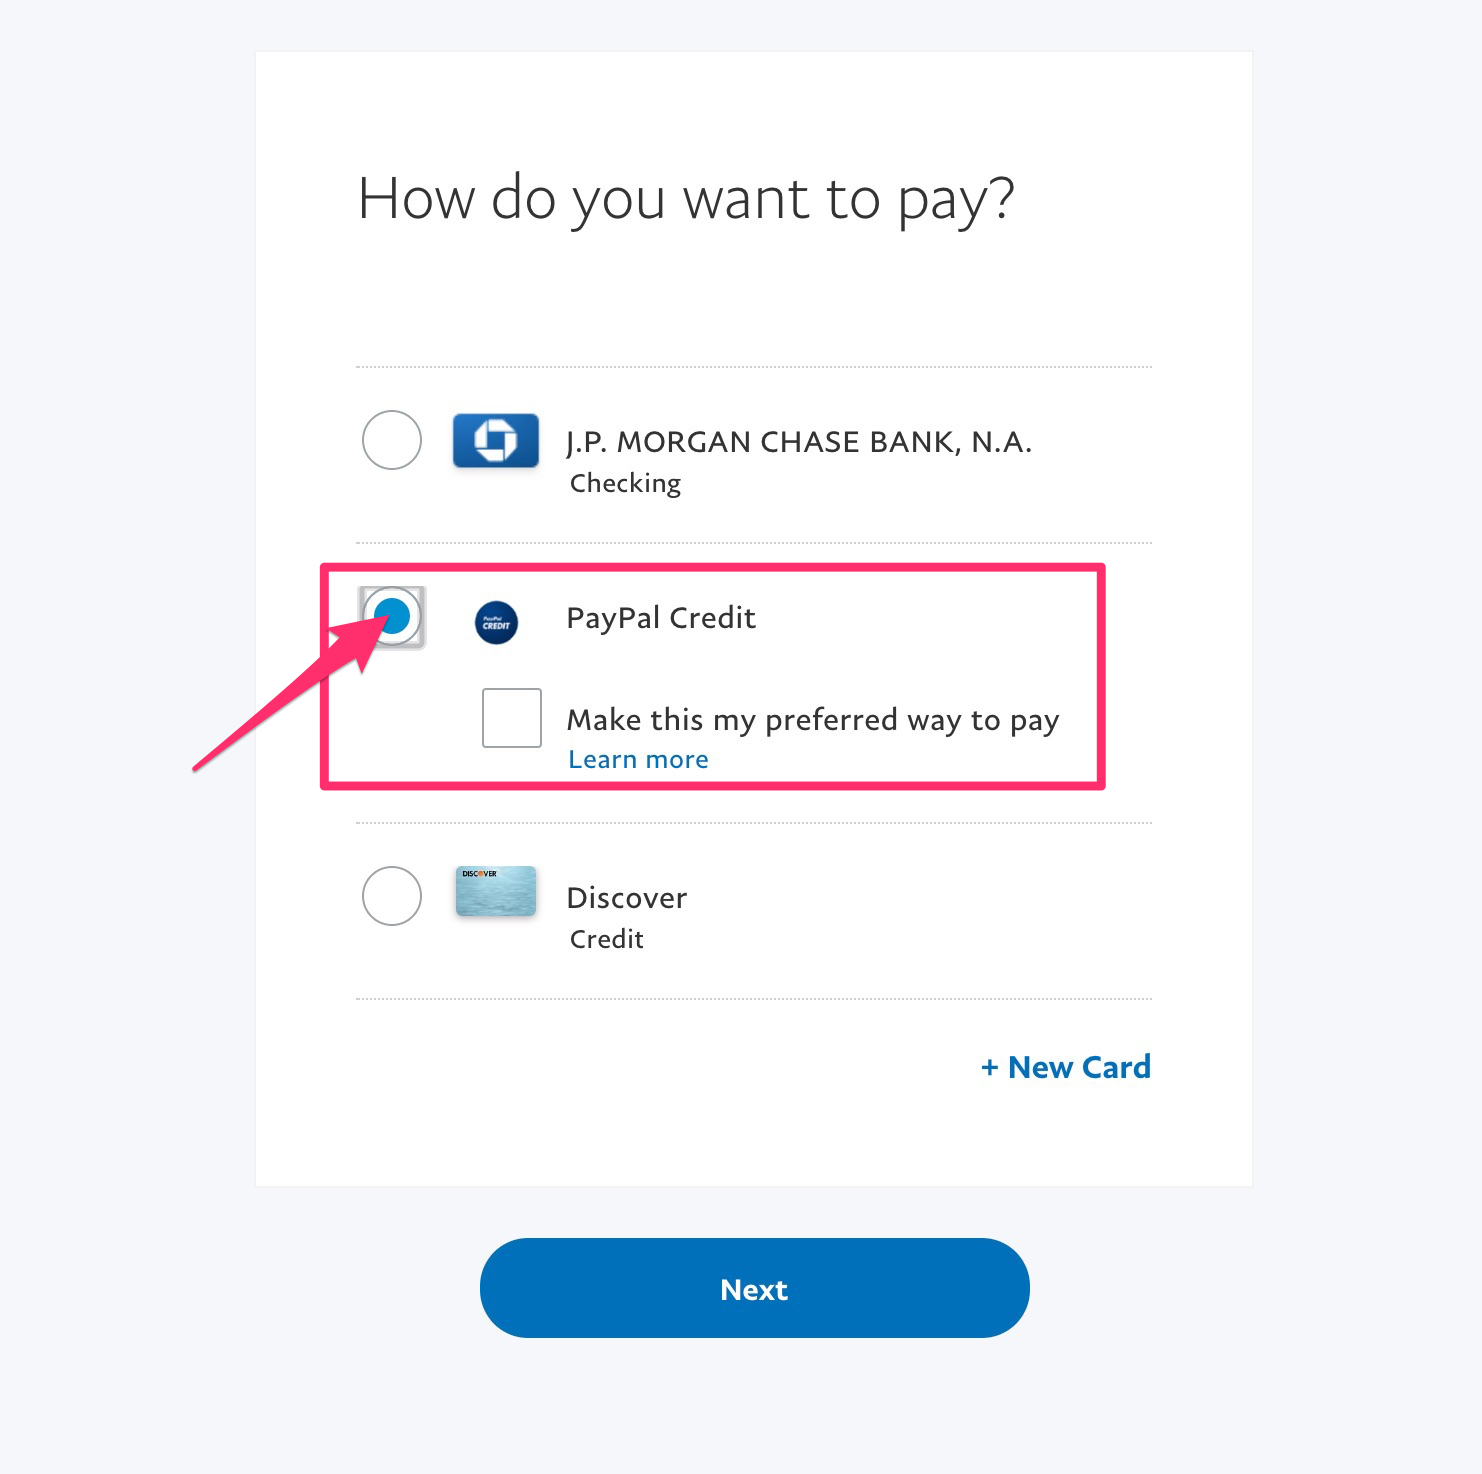 How to Respond to a Money Request from Land F/X to Pay With PayPal